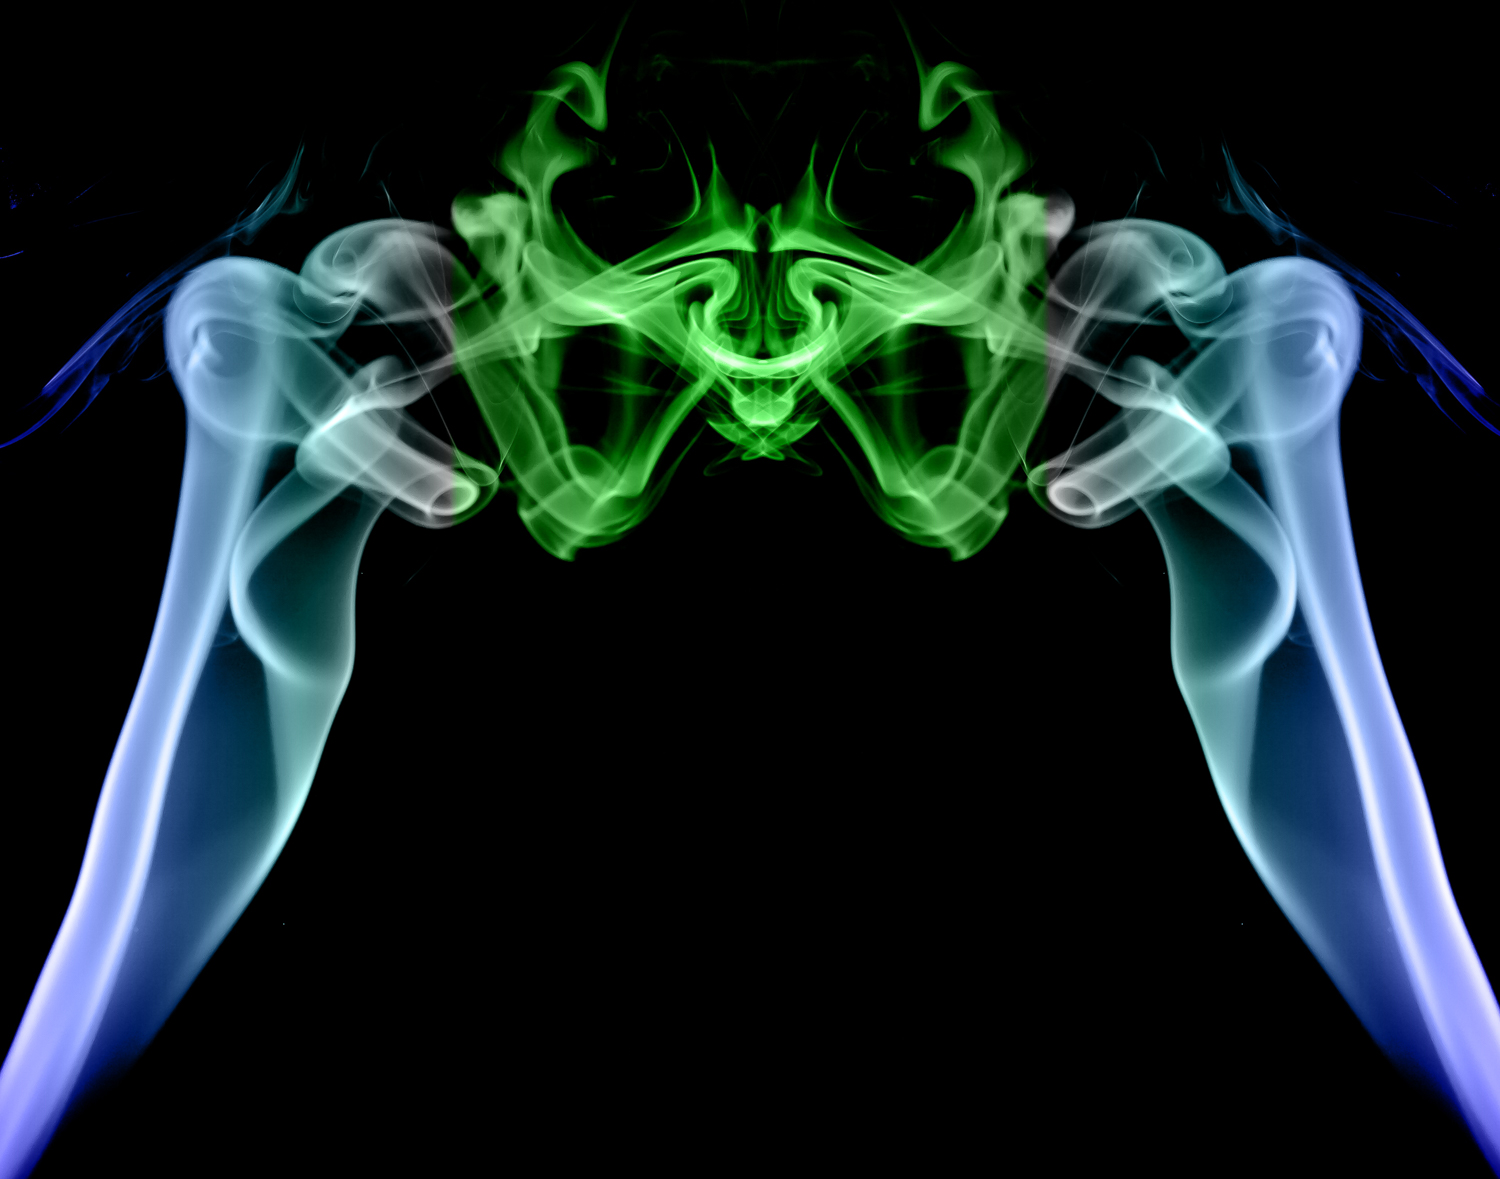 Abstract Smoke Photography - Smoke photo mirrored and colored with a gradient